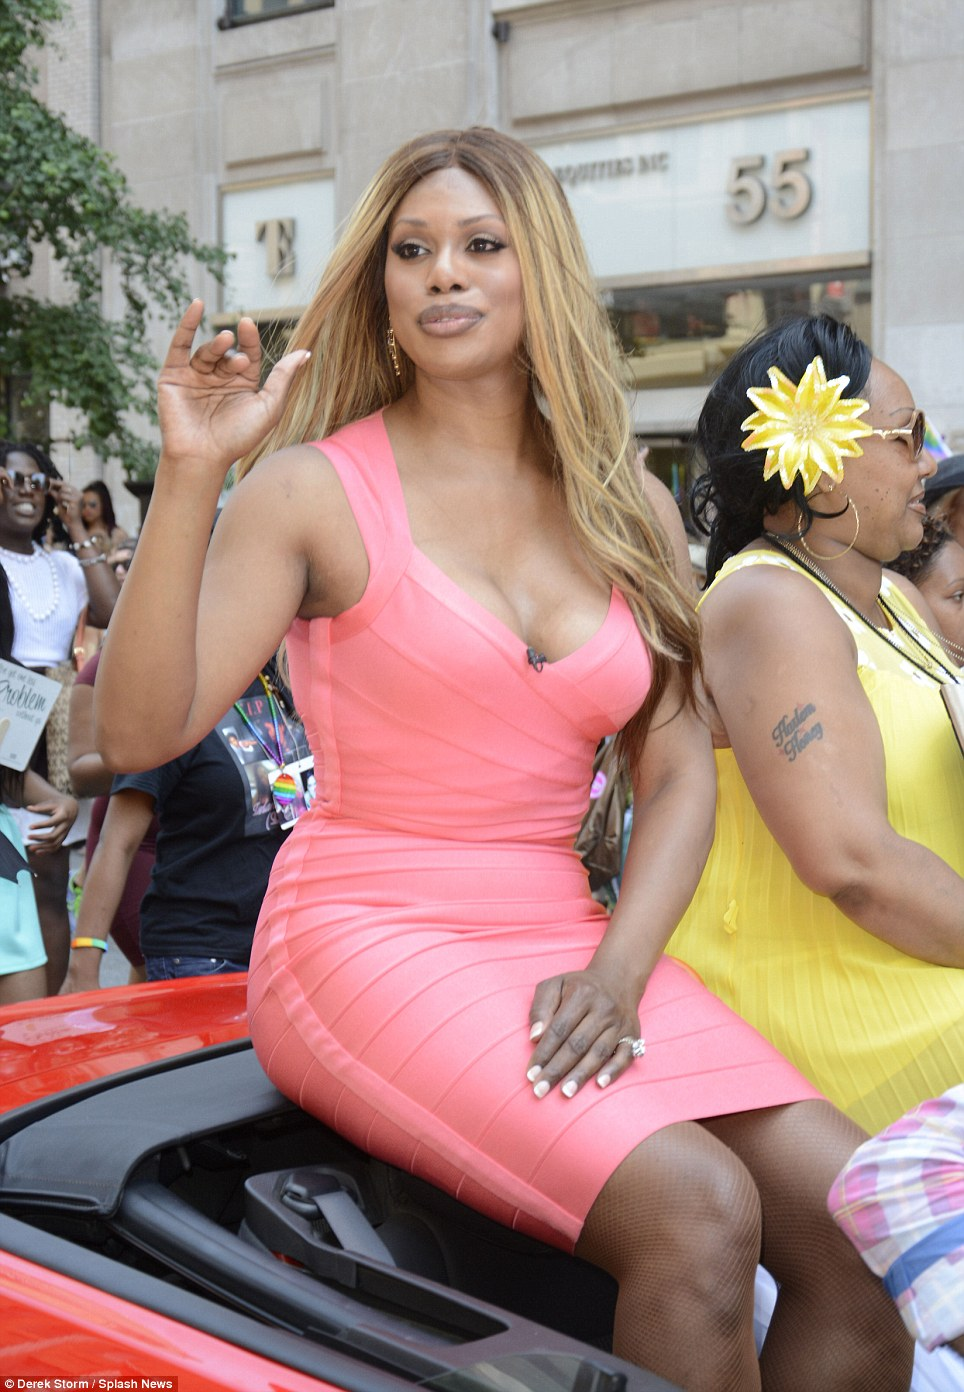 Star: Laverne Cox, who stars in the hit Netflix series Orange is the New Black, serves as a grand marshal in the New York parade